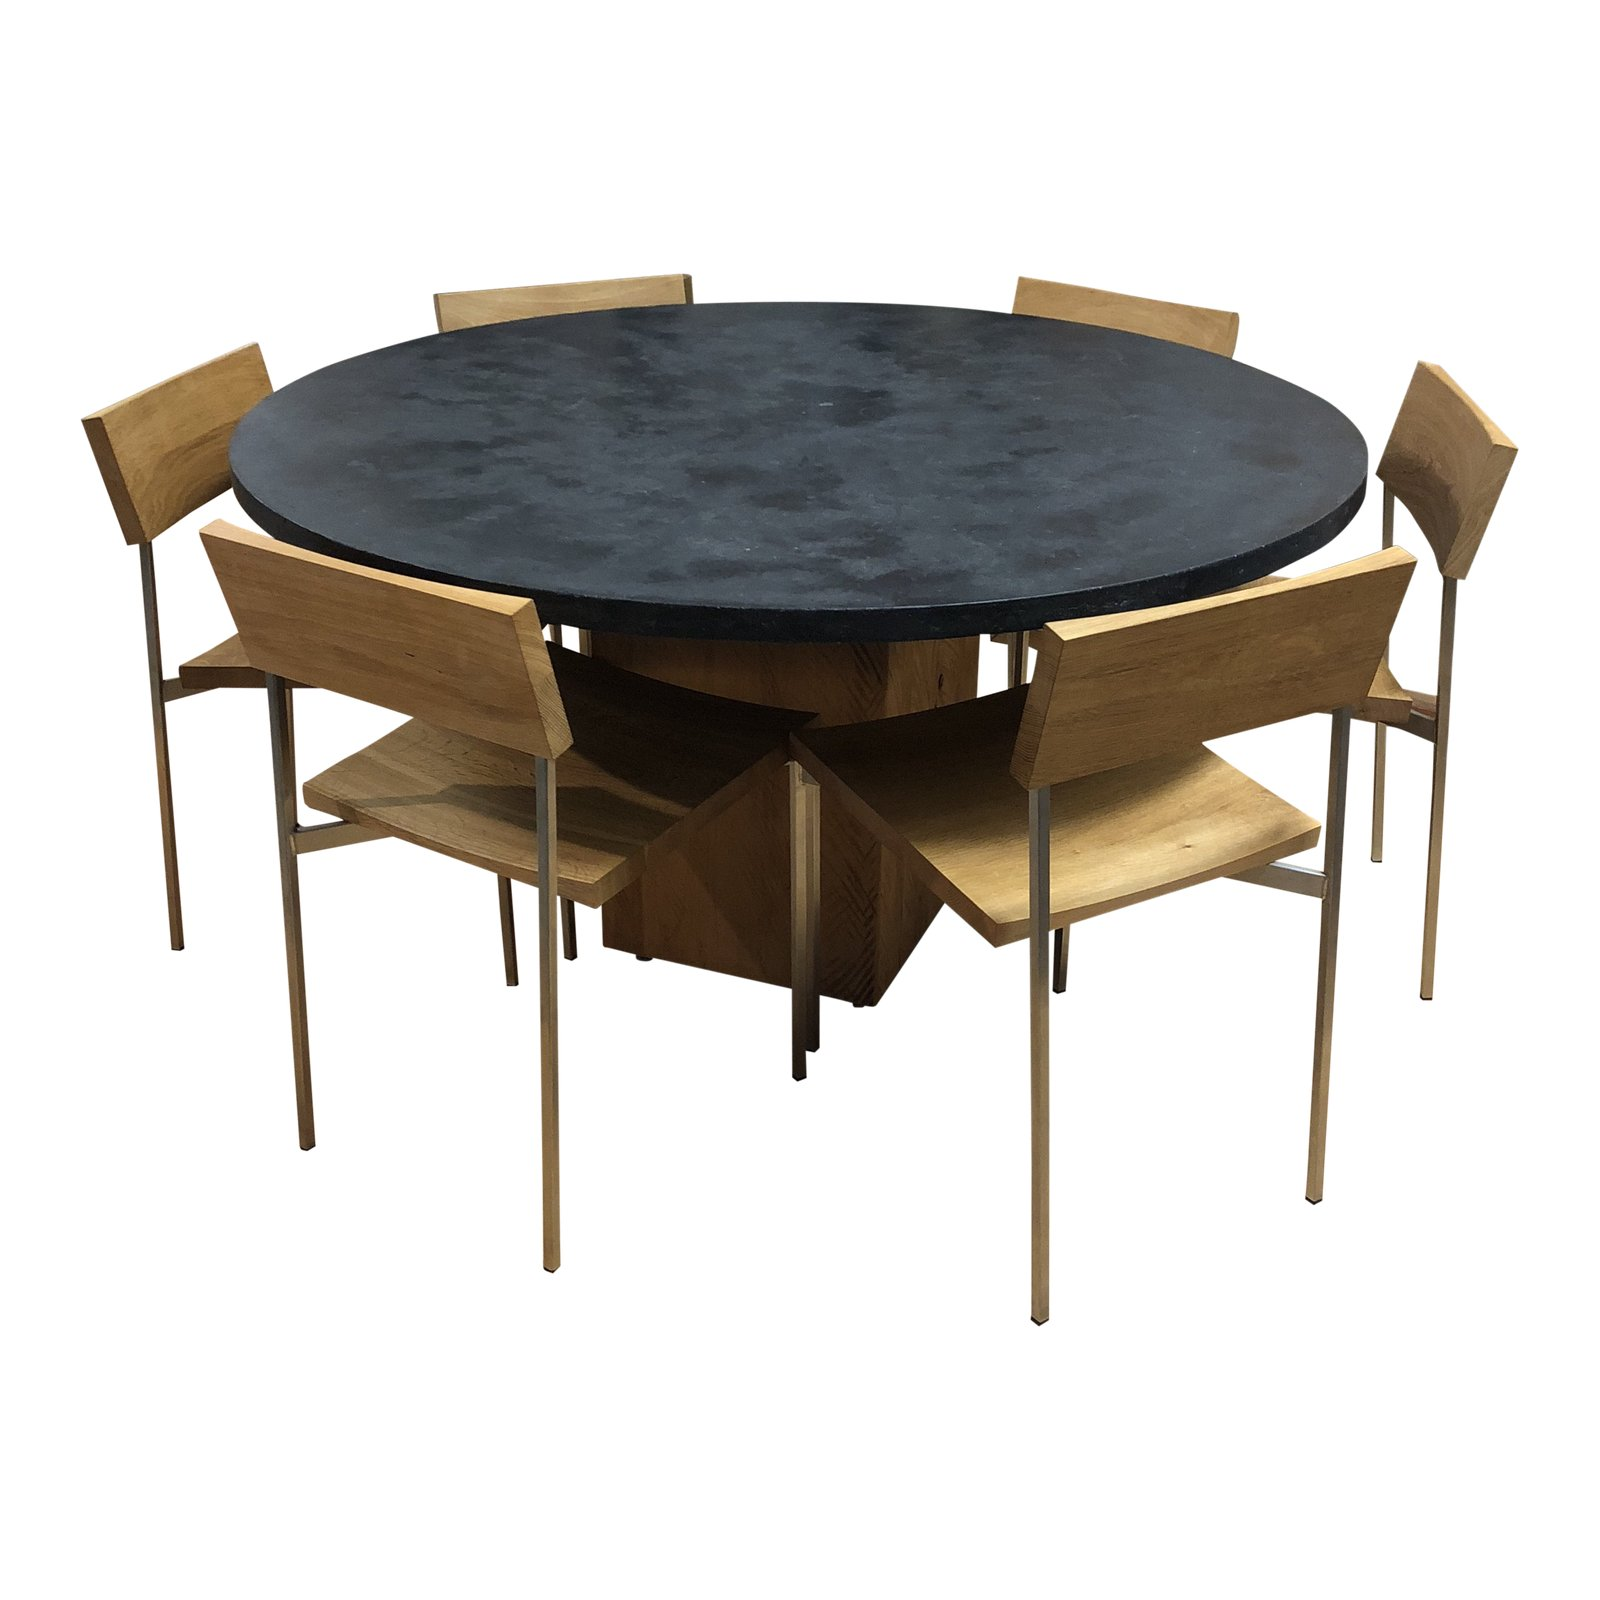 Concrete Wood Stainless Steel Dining Set Original Price